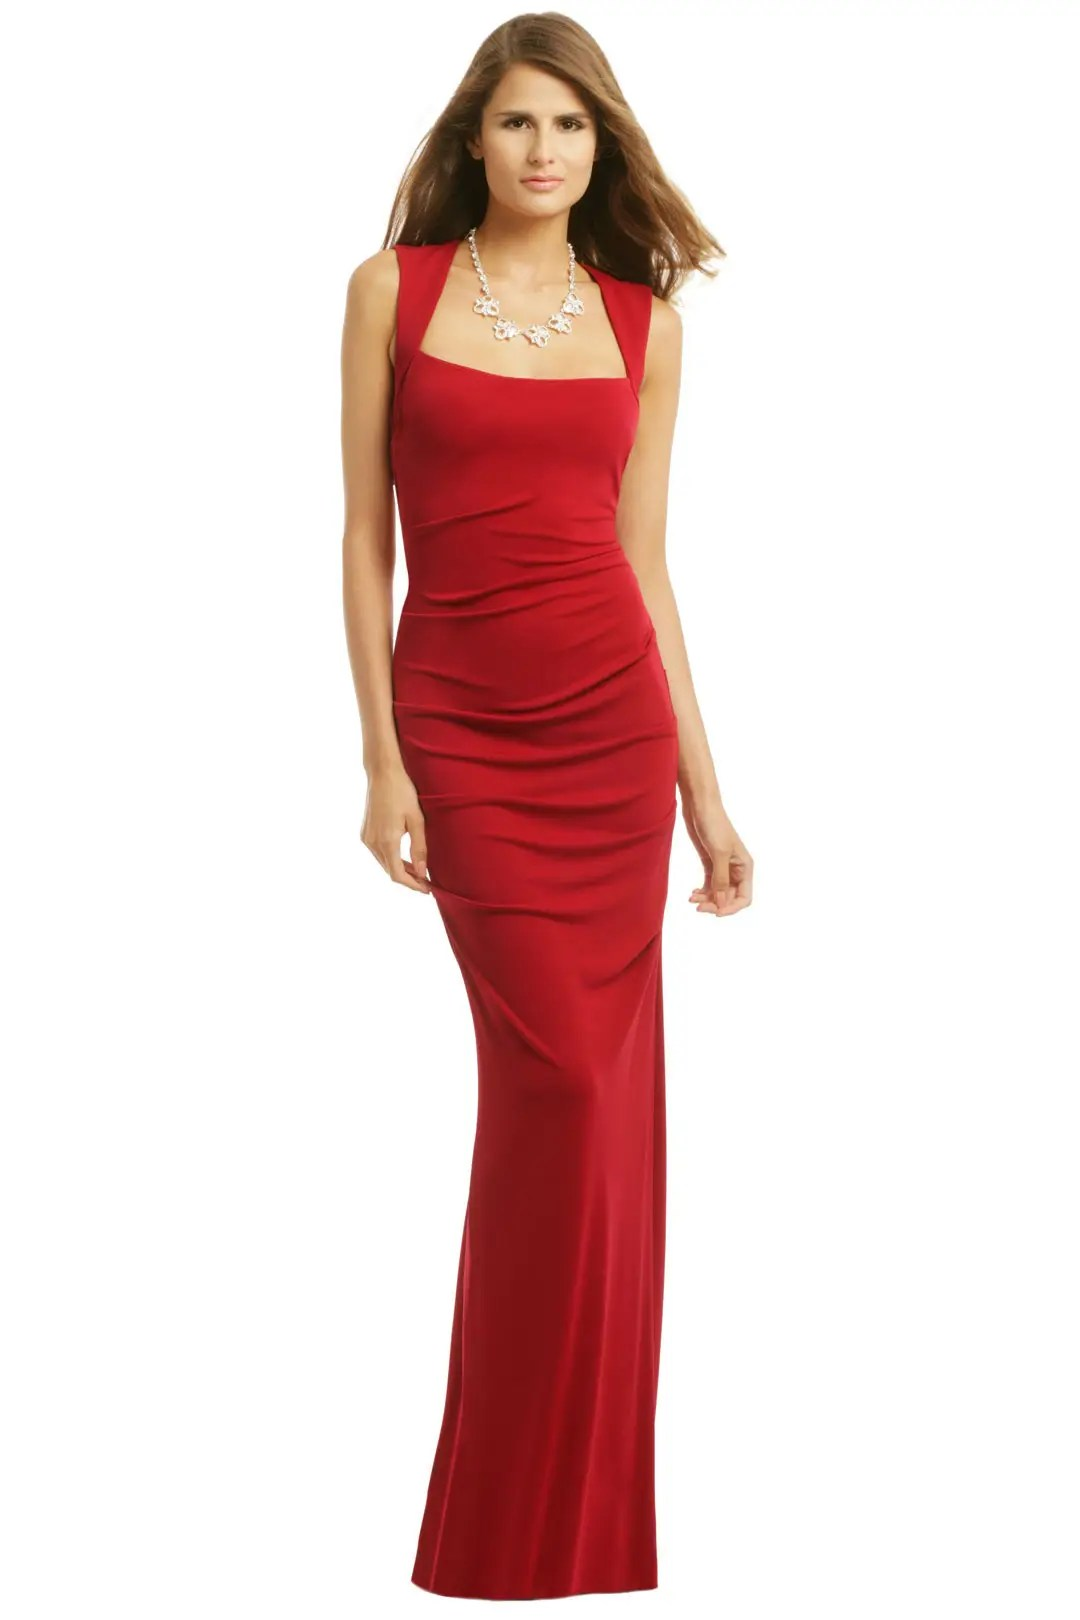 Exotic Spice Gown by Nicole Miller for 149  Rent the Runway